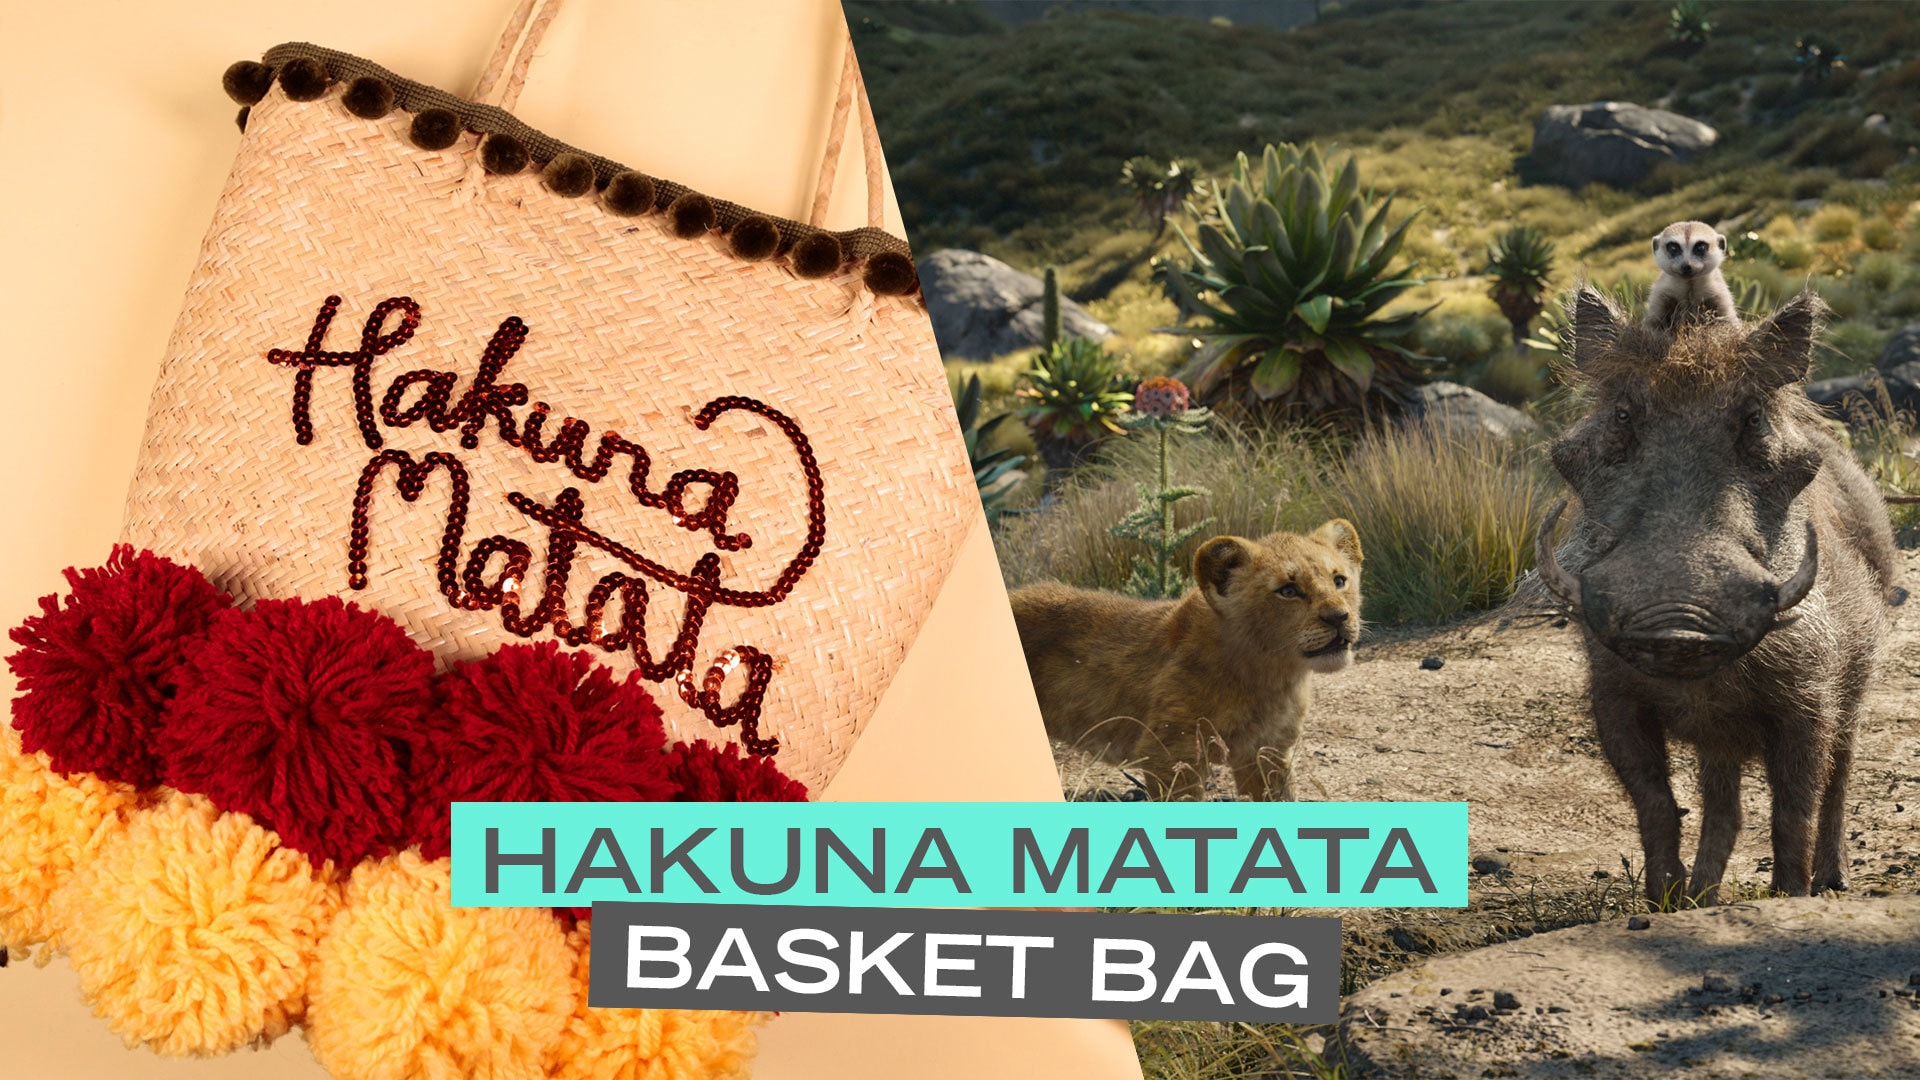 Disney Style: DIY Pom Pom Basket Bag Inspired by Disney's The Lion King